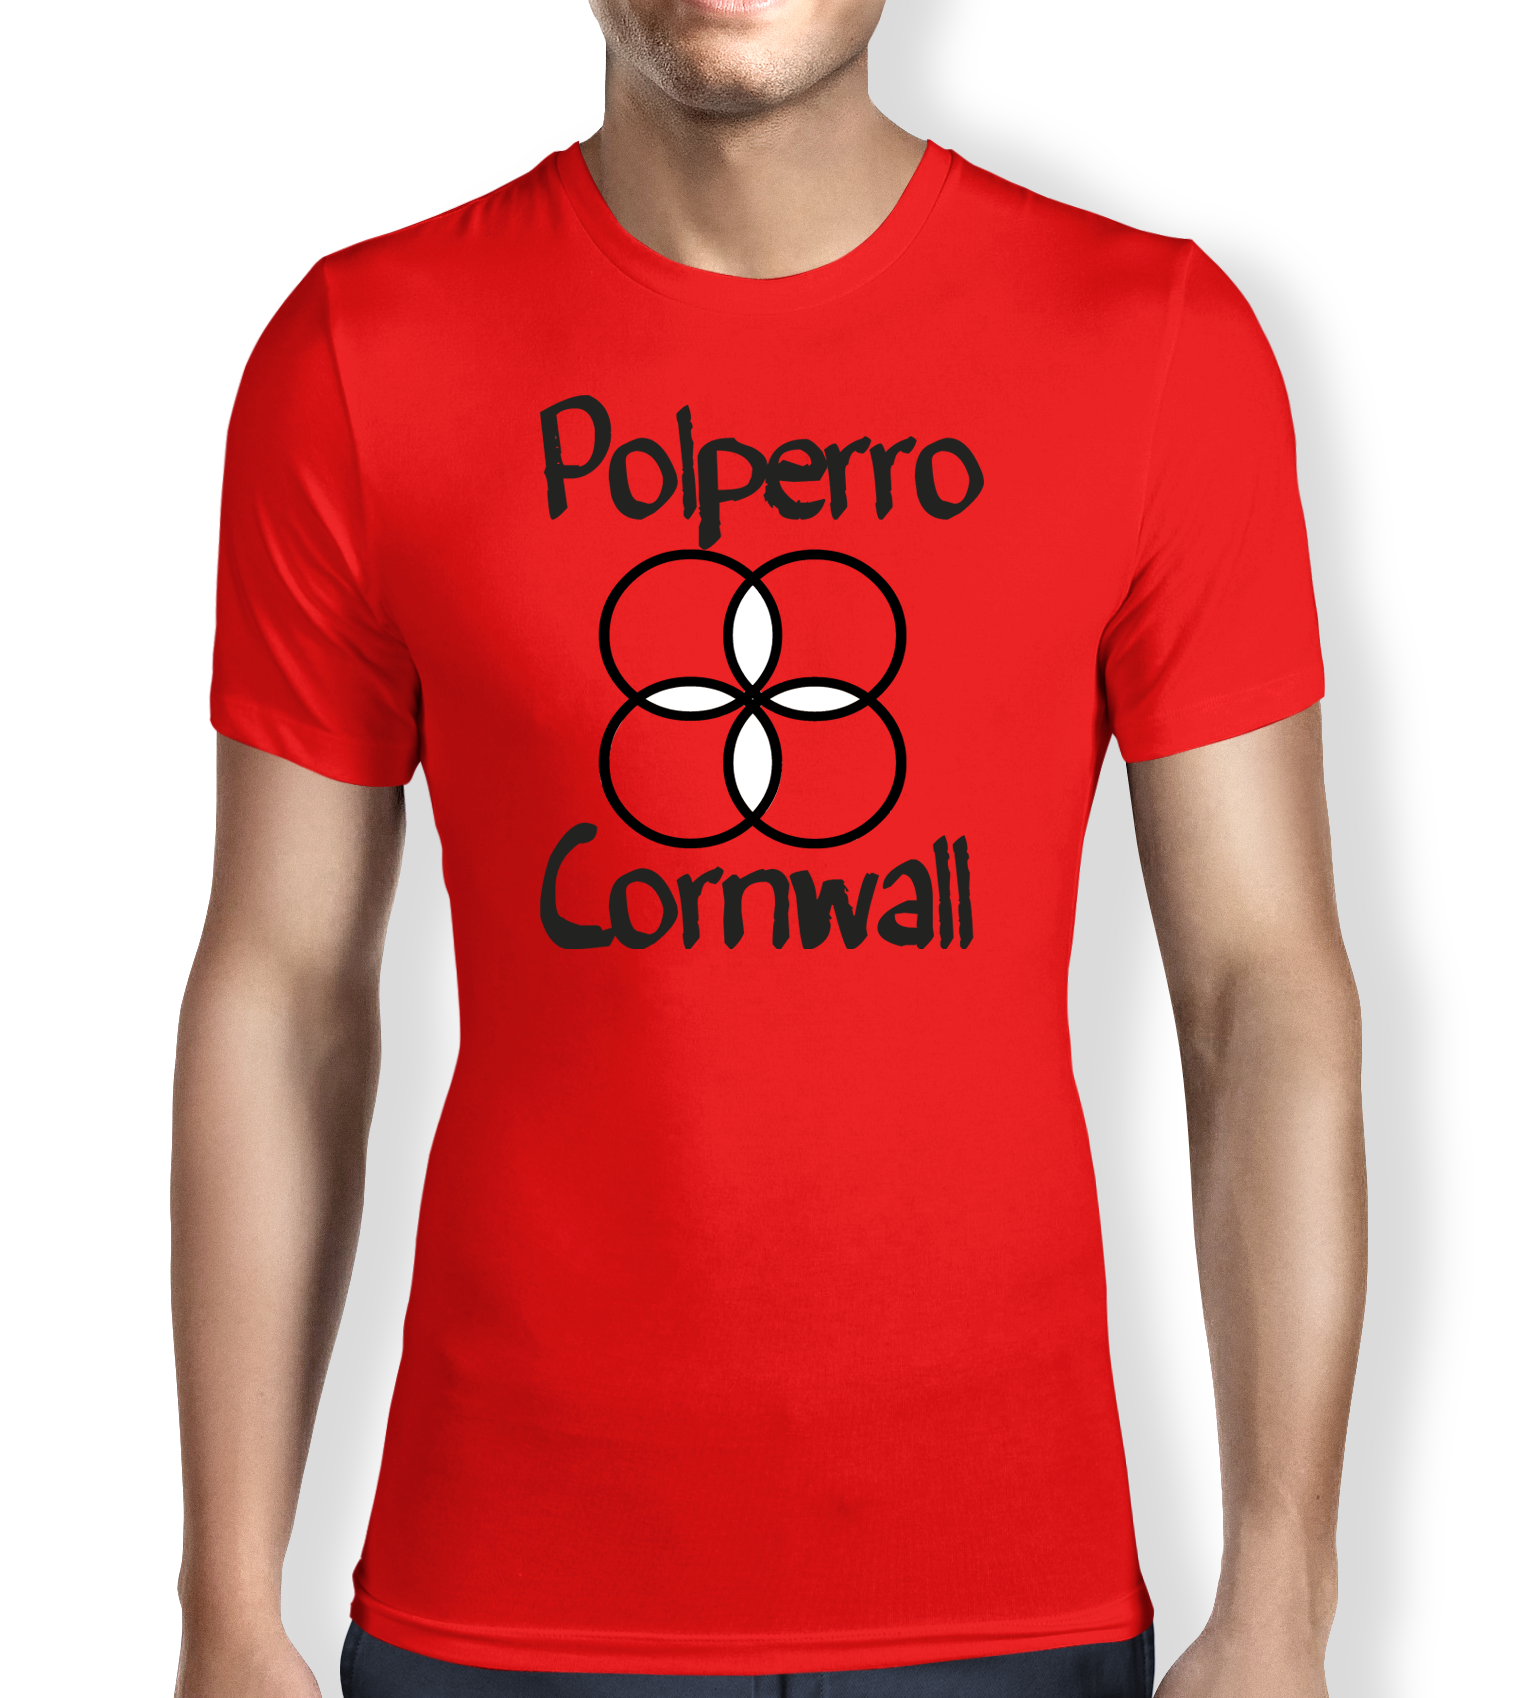 polperro-cornwall-red-mens t-shirt